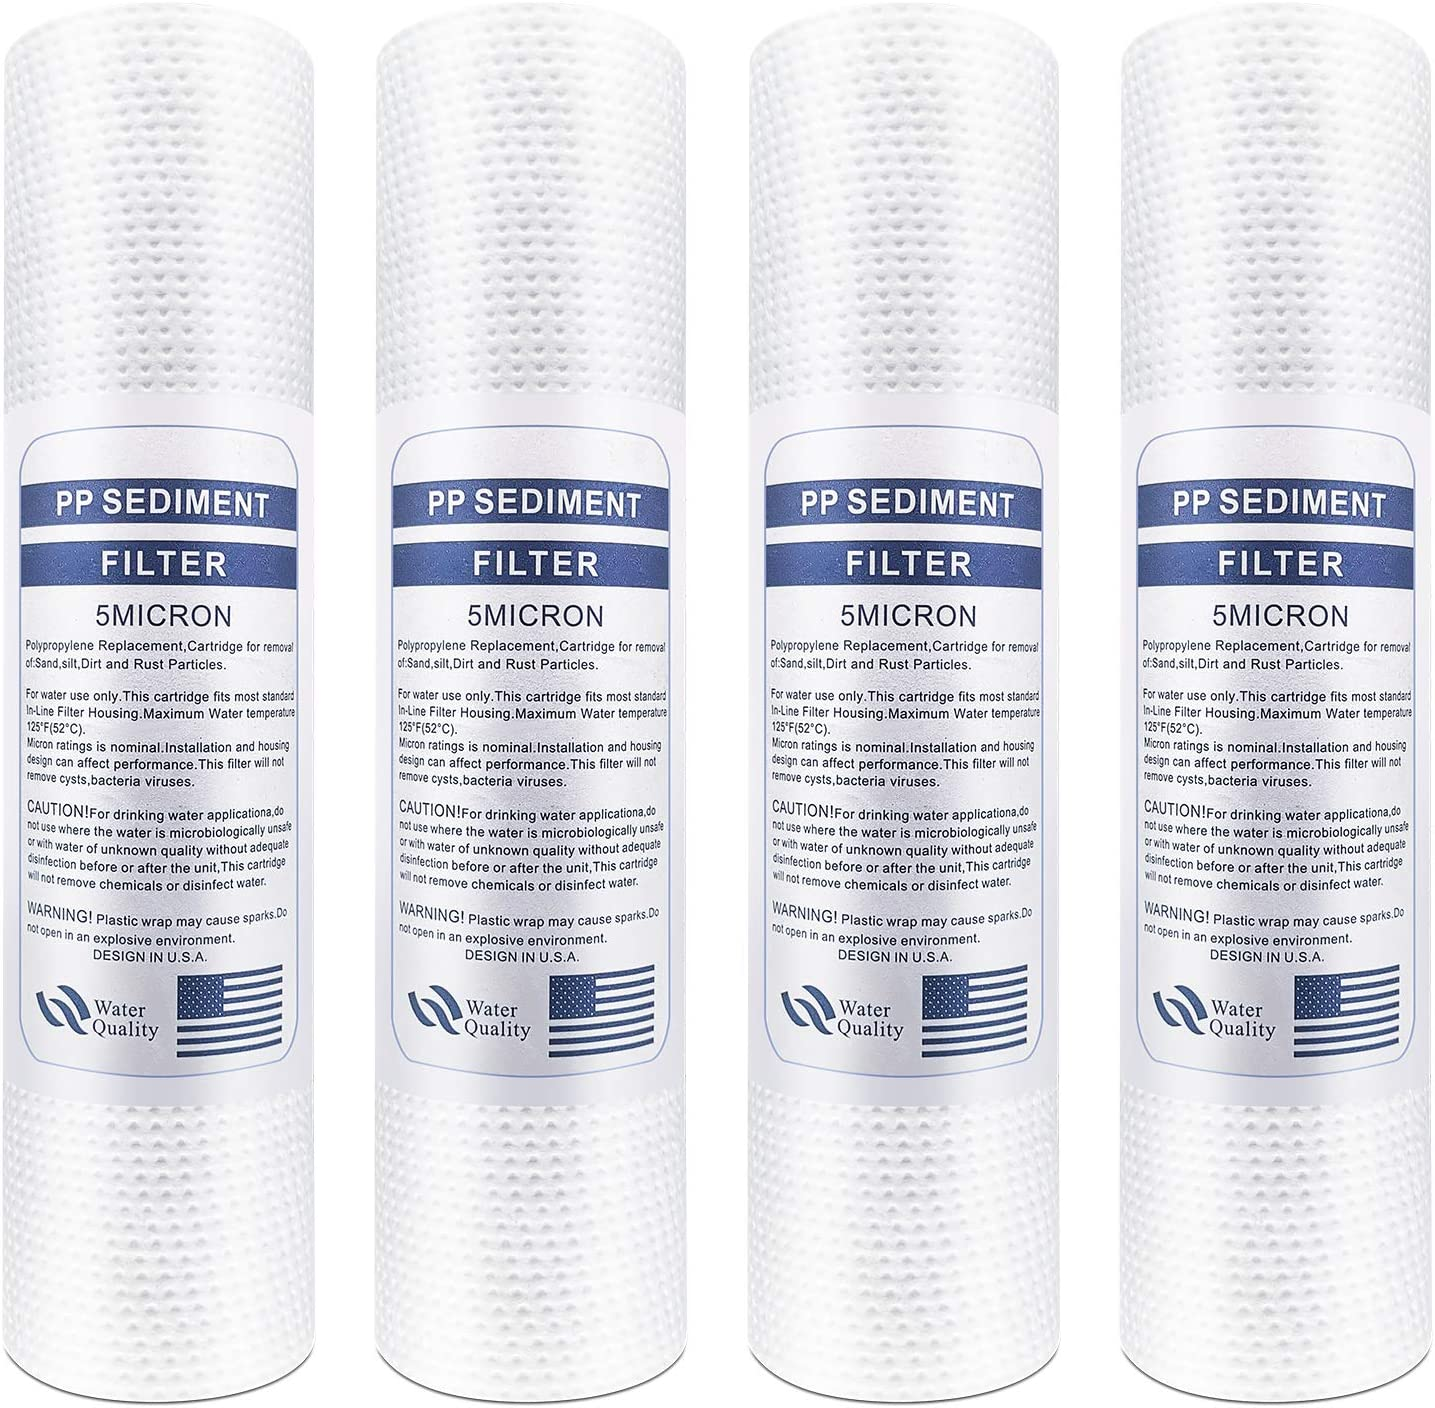 "Lafiucy Melt-blownNeedle-Punched Sediment Water Filter Cartridge 10""x 2.5"",5Micron,4pack,10"" x 2.5"" Whole House Sediment Water Filter Replacement Cartridge"